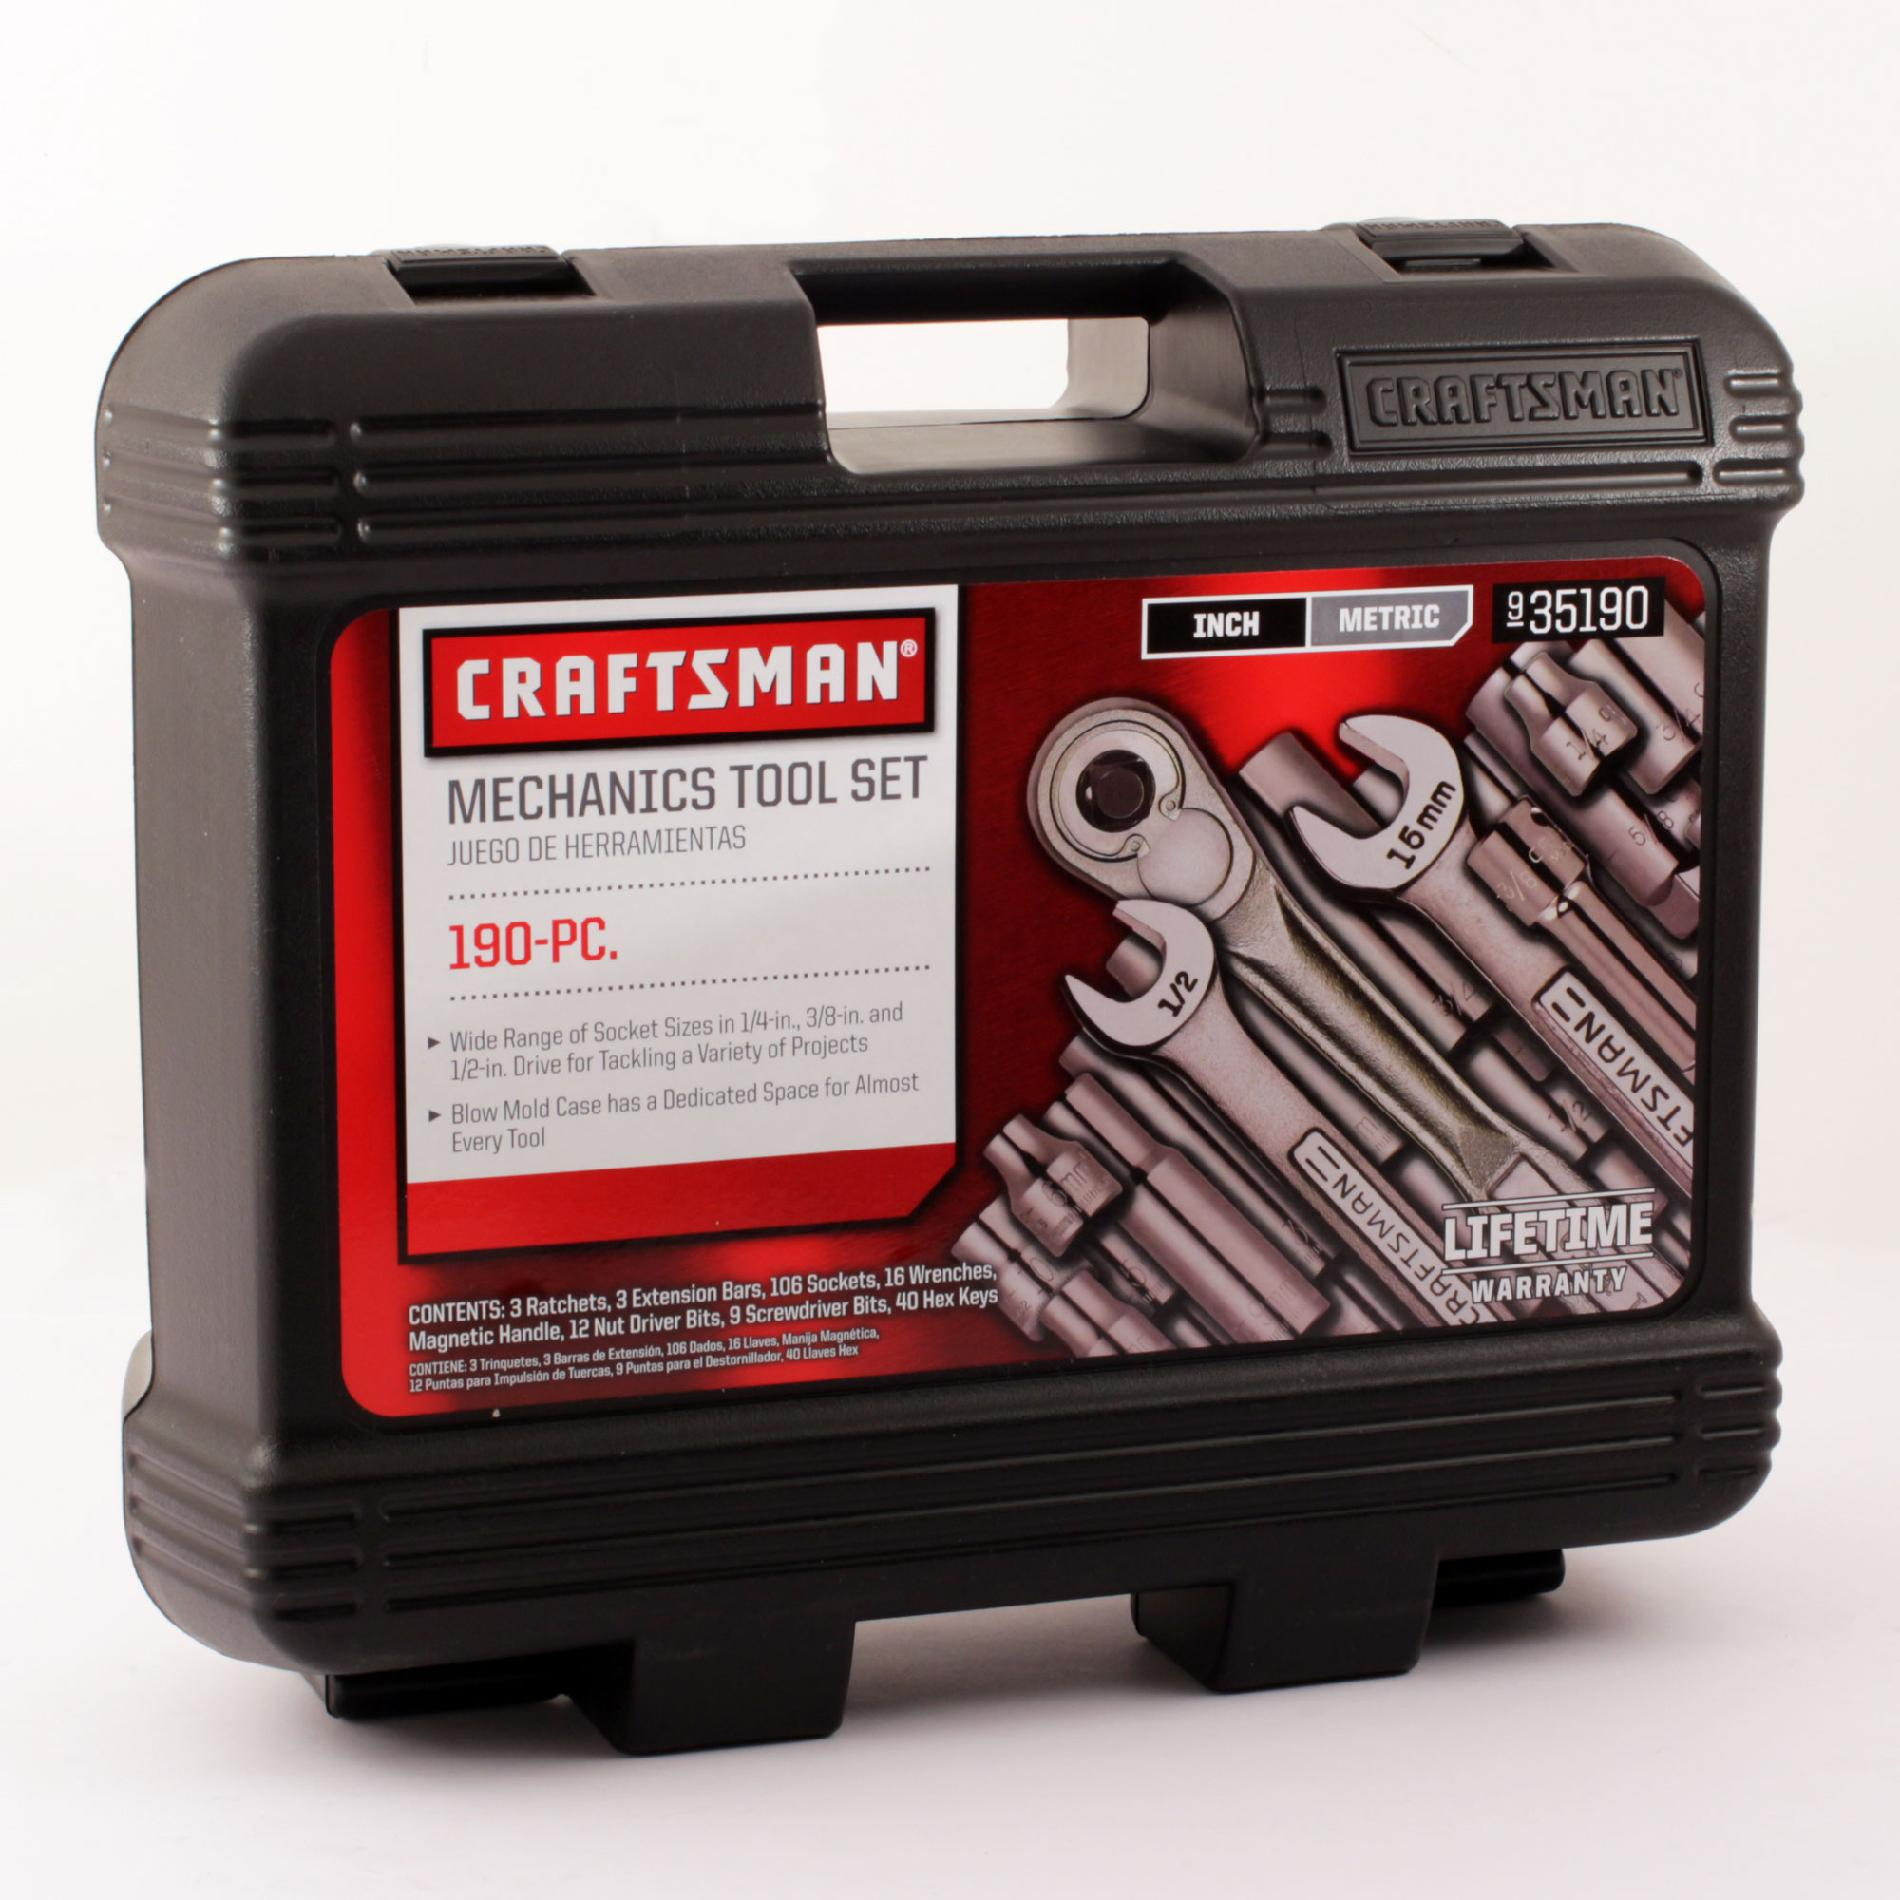 Craftsman Professional Use 190PC Professional Use Mechanics Tool Set